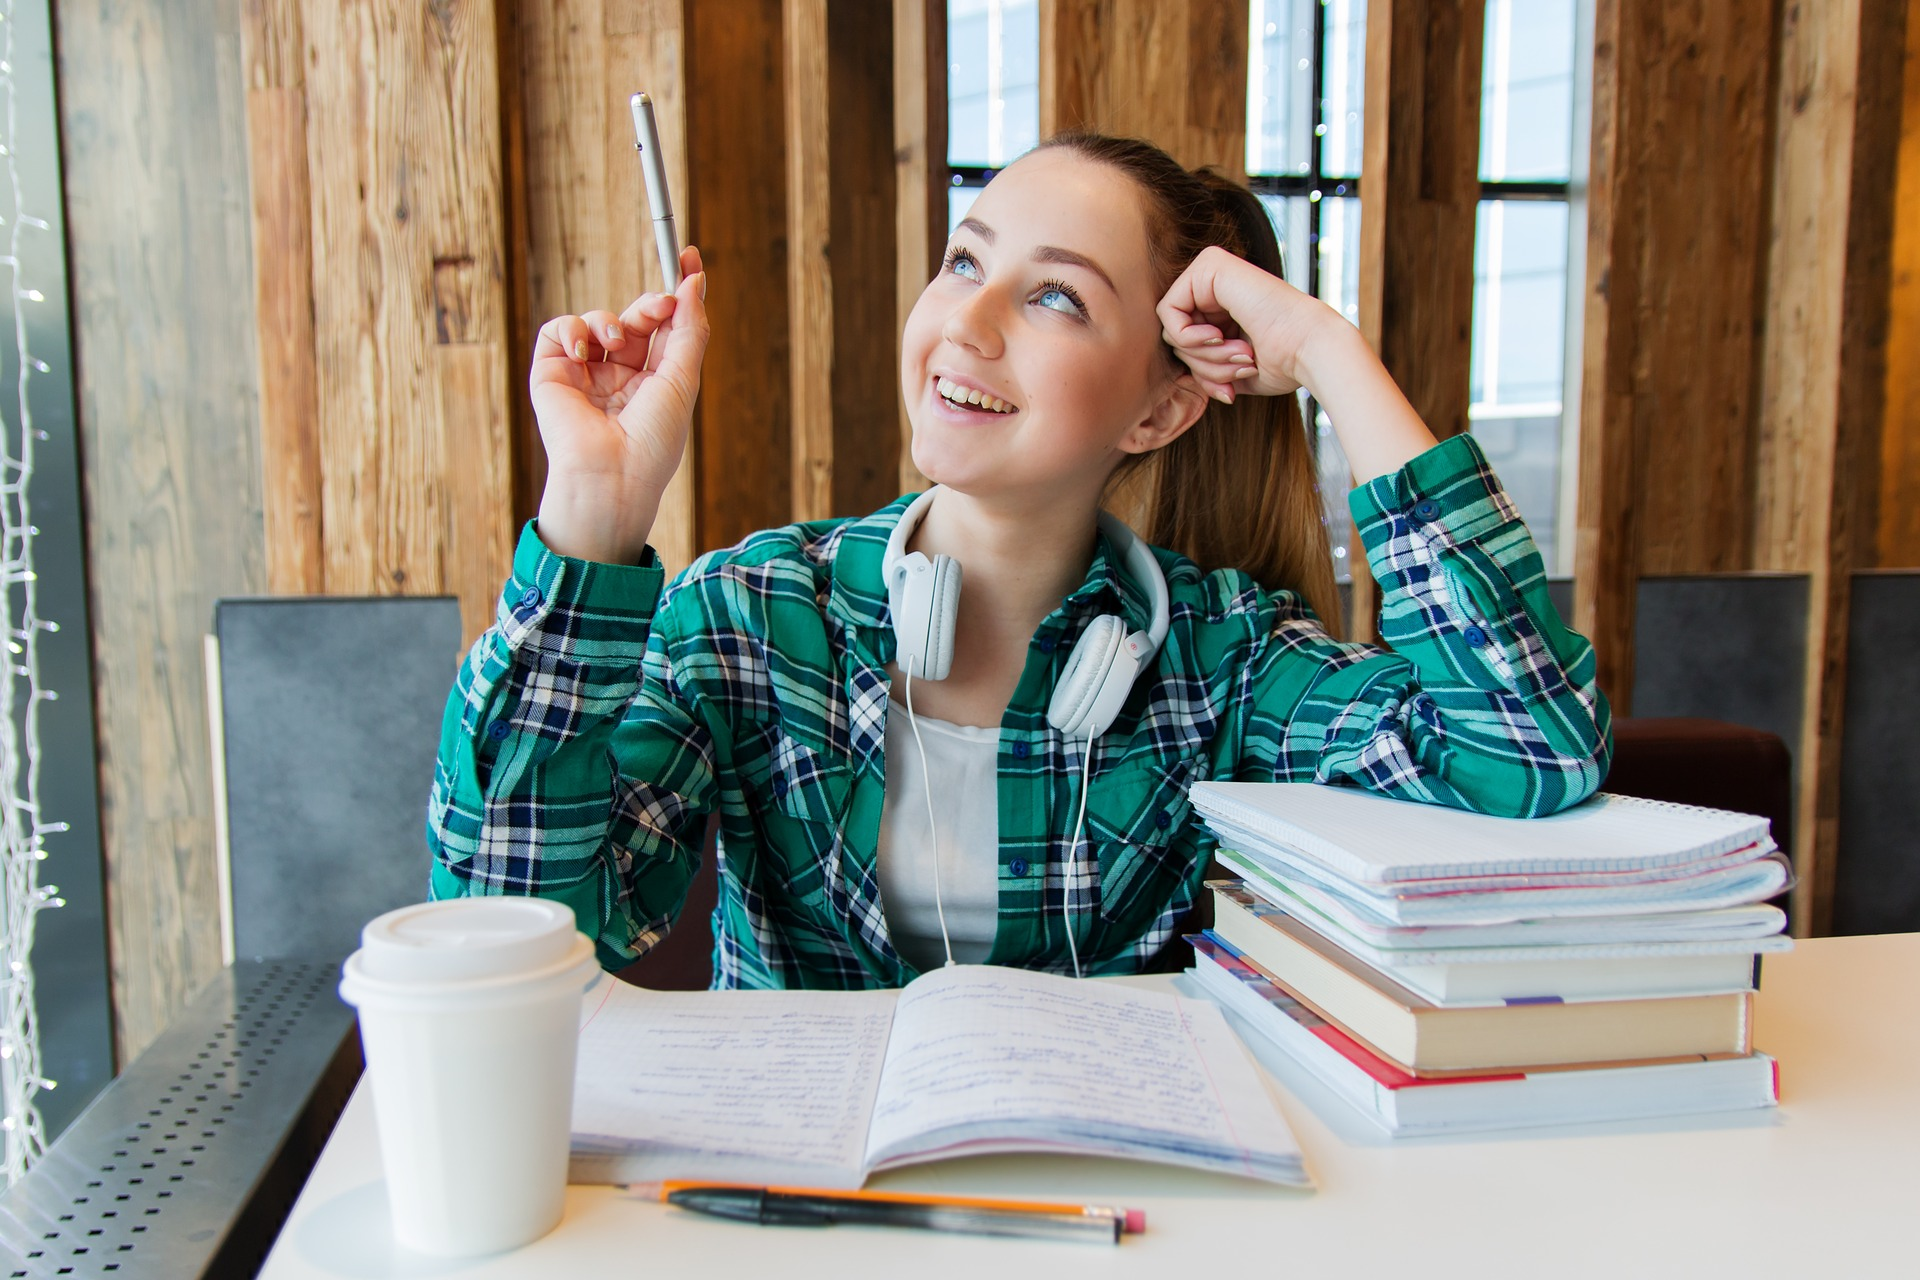 How to Increase Grasping Power and Concentration Power in Studies?